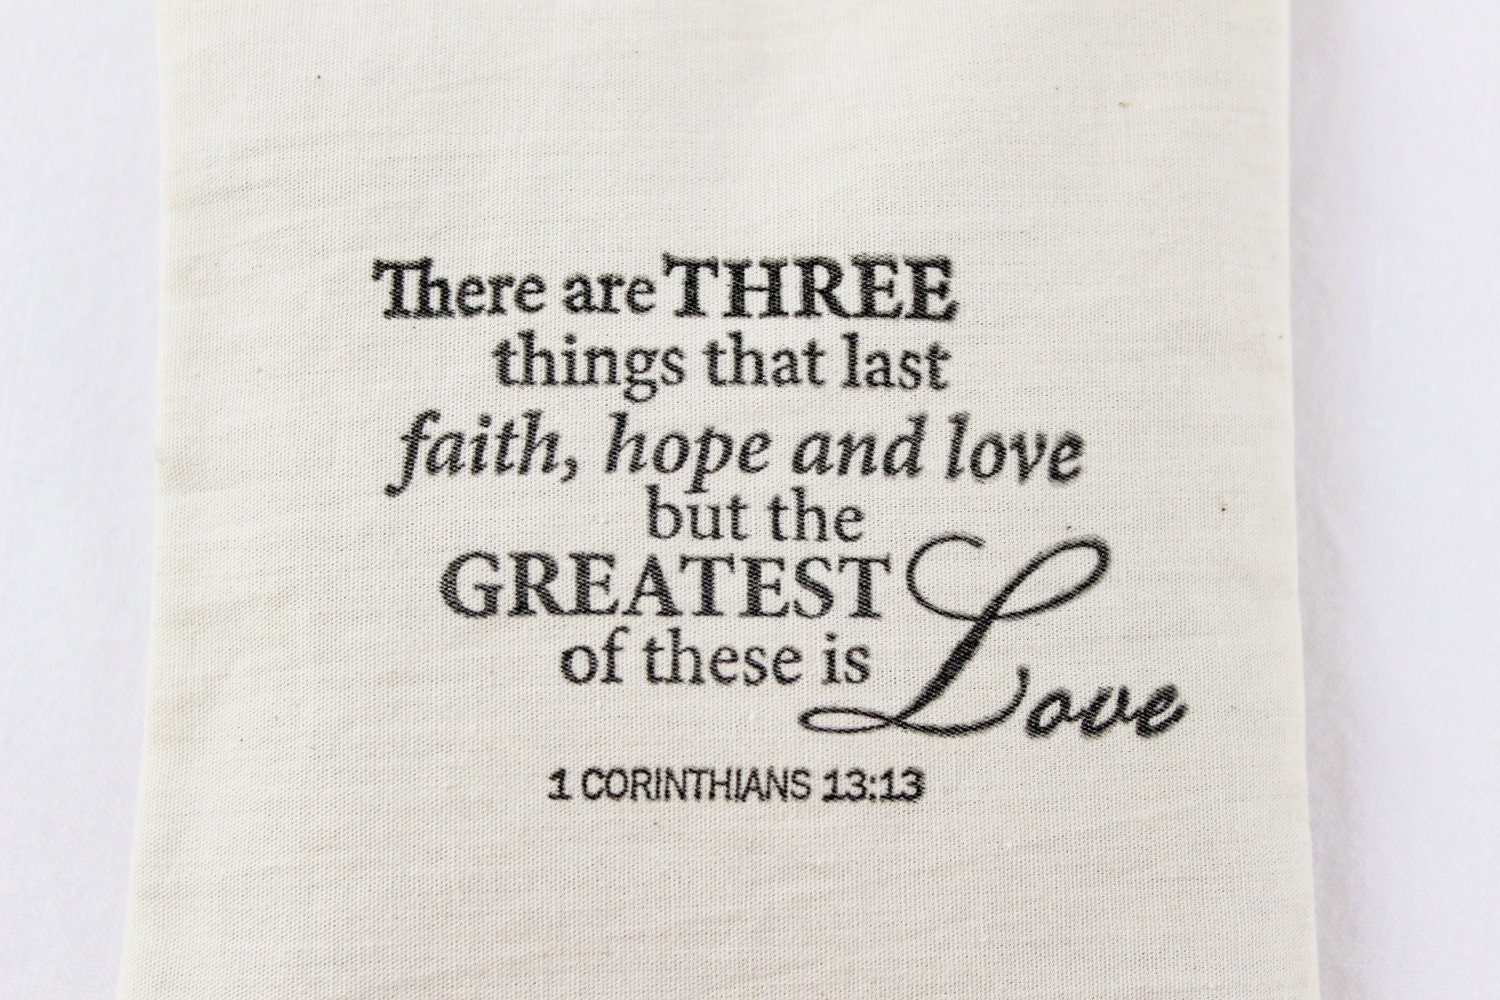 Corinthians Love Quotes Faith Hope Love Lavender Sachet 1 Corinthians 13 Bible Verse